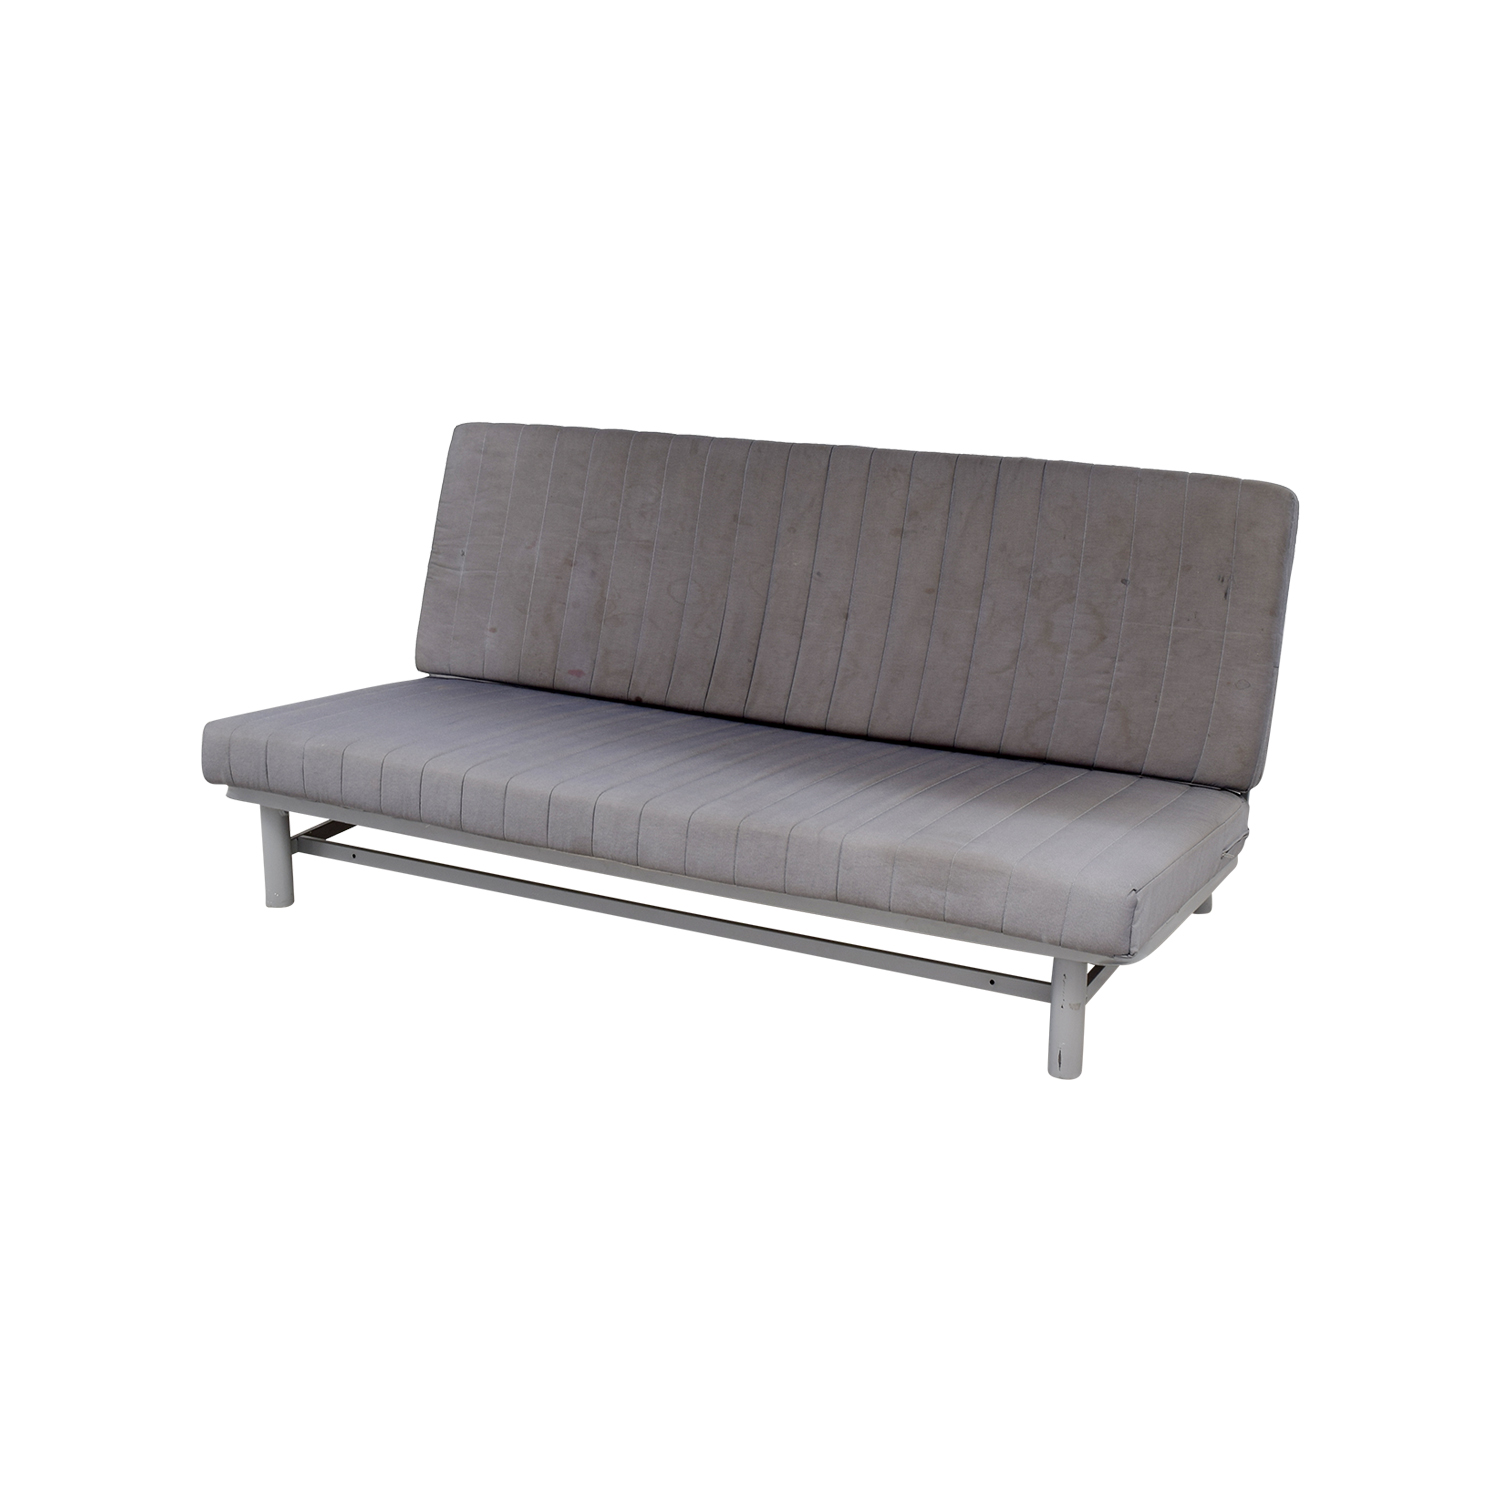 Ikea Futon Sofa Bed: IKEA IKEA Grey Sofa Bed / Sofas